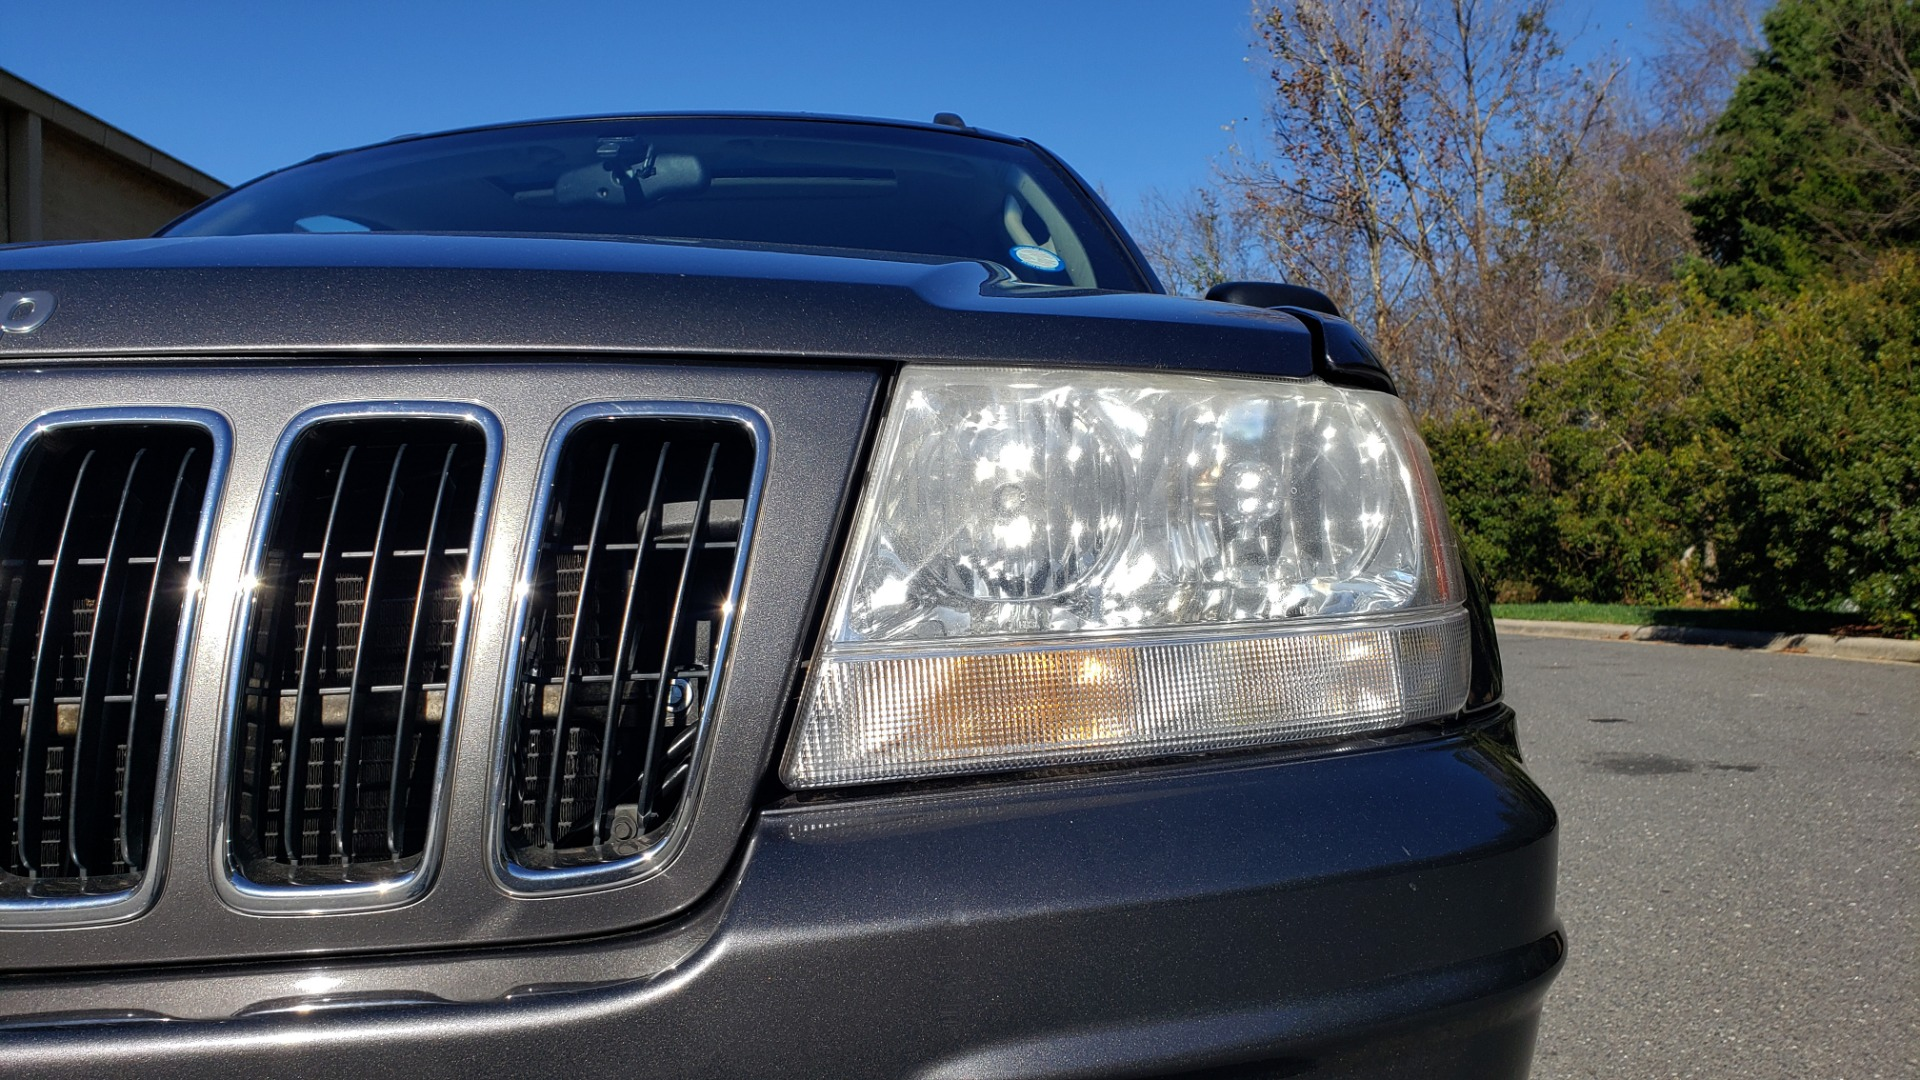 Used 2002 Jeep GRAND CHEROKEE LIMITED 4X4 / SUNROOF / 4.7L V8 / 5-SPD AUTO / CLD WTHR for sale Sold at Formula Imports in Charlotte NC 28227 26